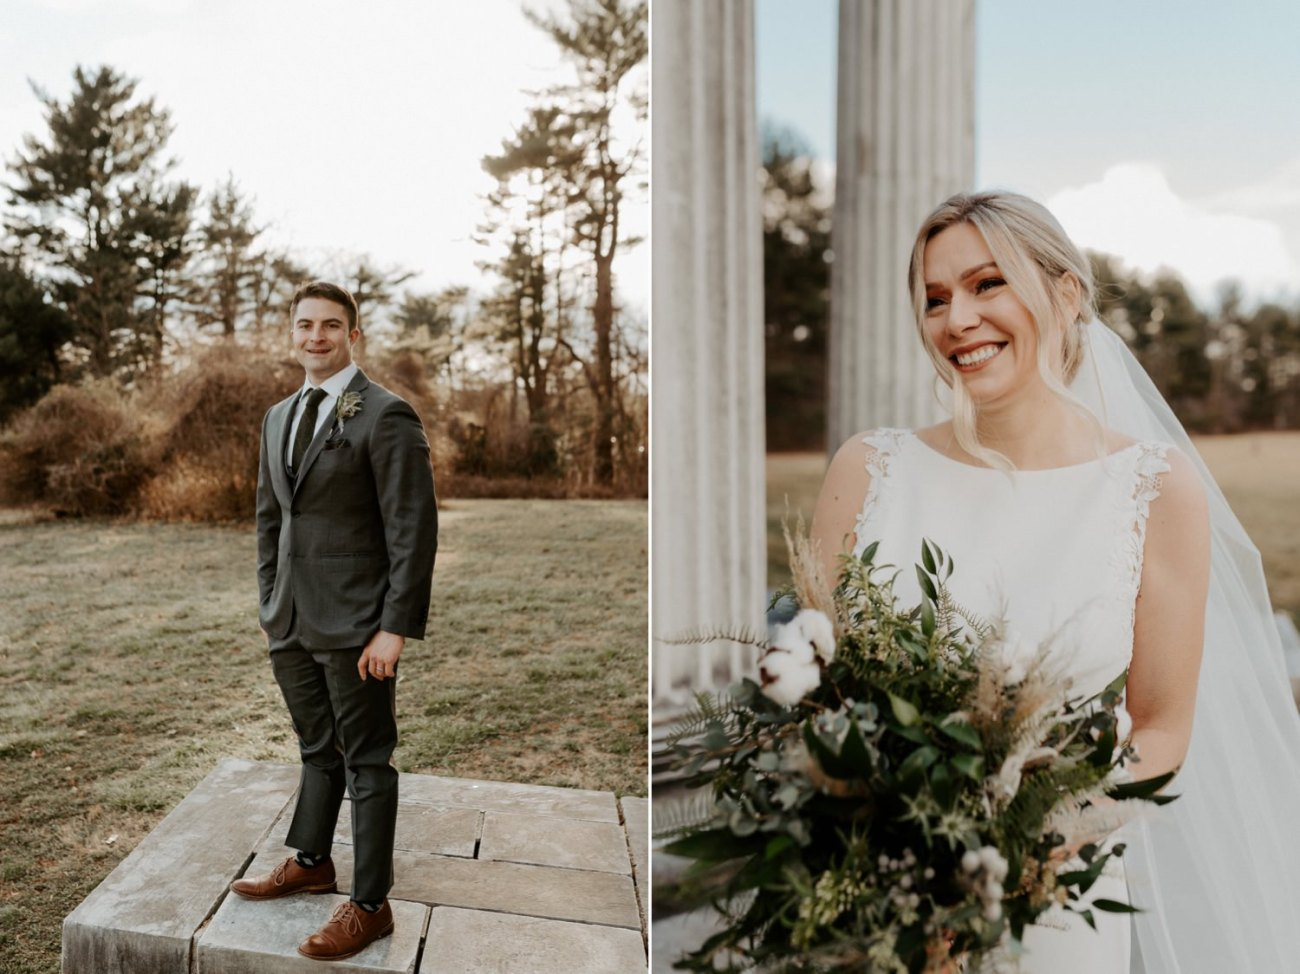 Princeton Battlefield Wedding Princeton University Elopement New Jersey Wedding Photographer Anais Possamai Photography 22